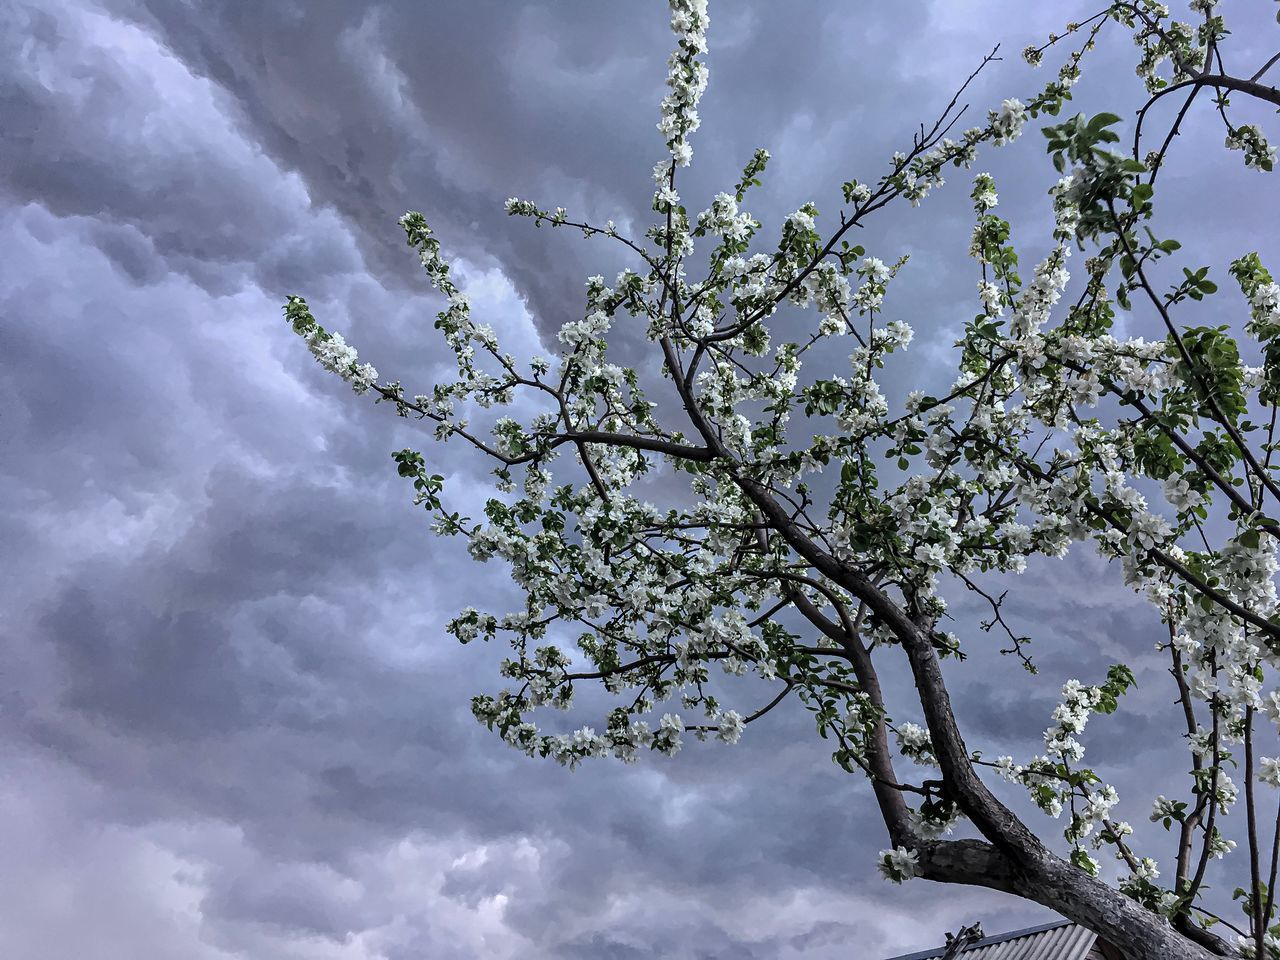 cloud - sky, sky, tree, plant, beauty in nature, low angle view, branch, growth, nature, no people, day, flower, flowering plant, white color, tranquility, blossom, outdoors, scenics - nature, freshness, cherry blossom, spring